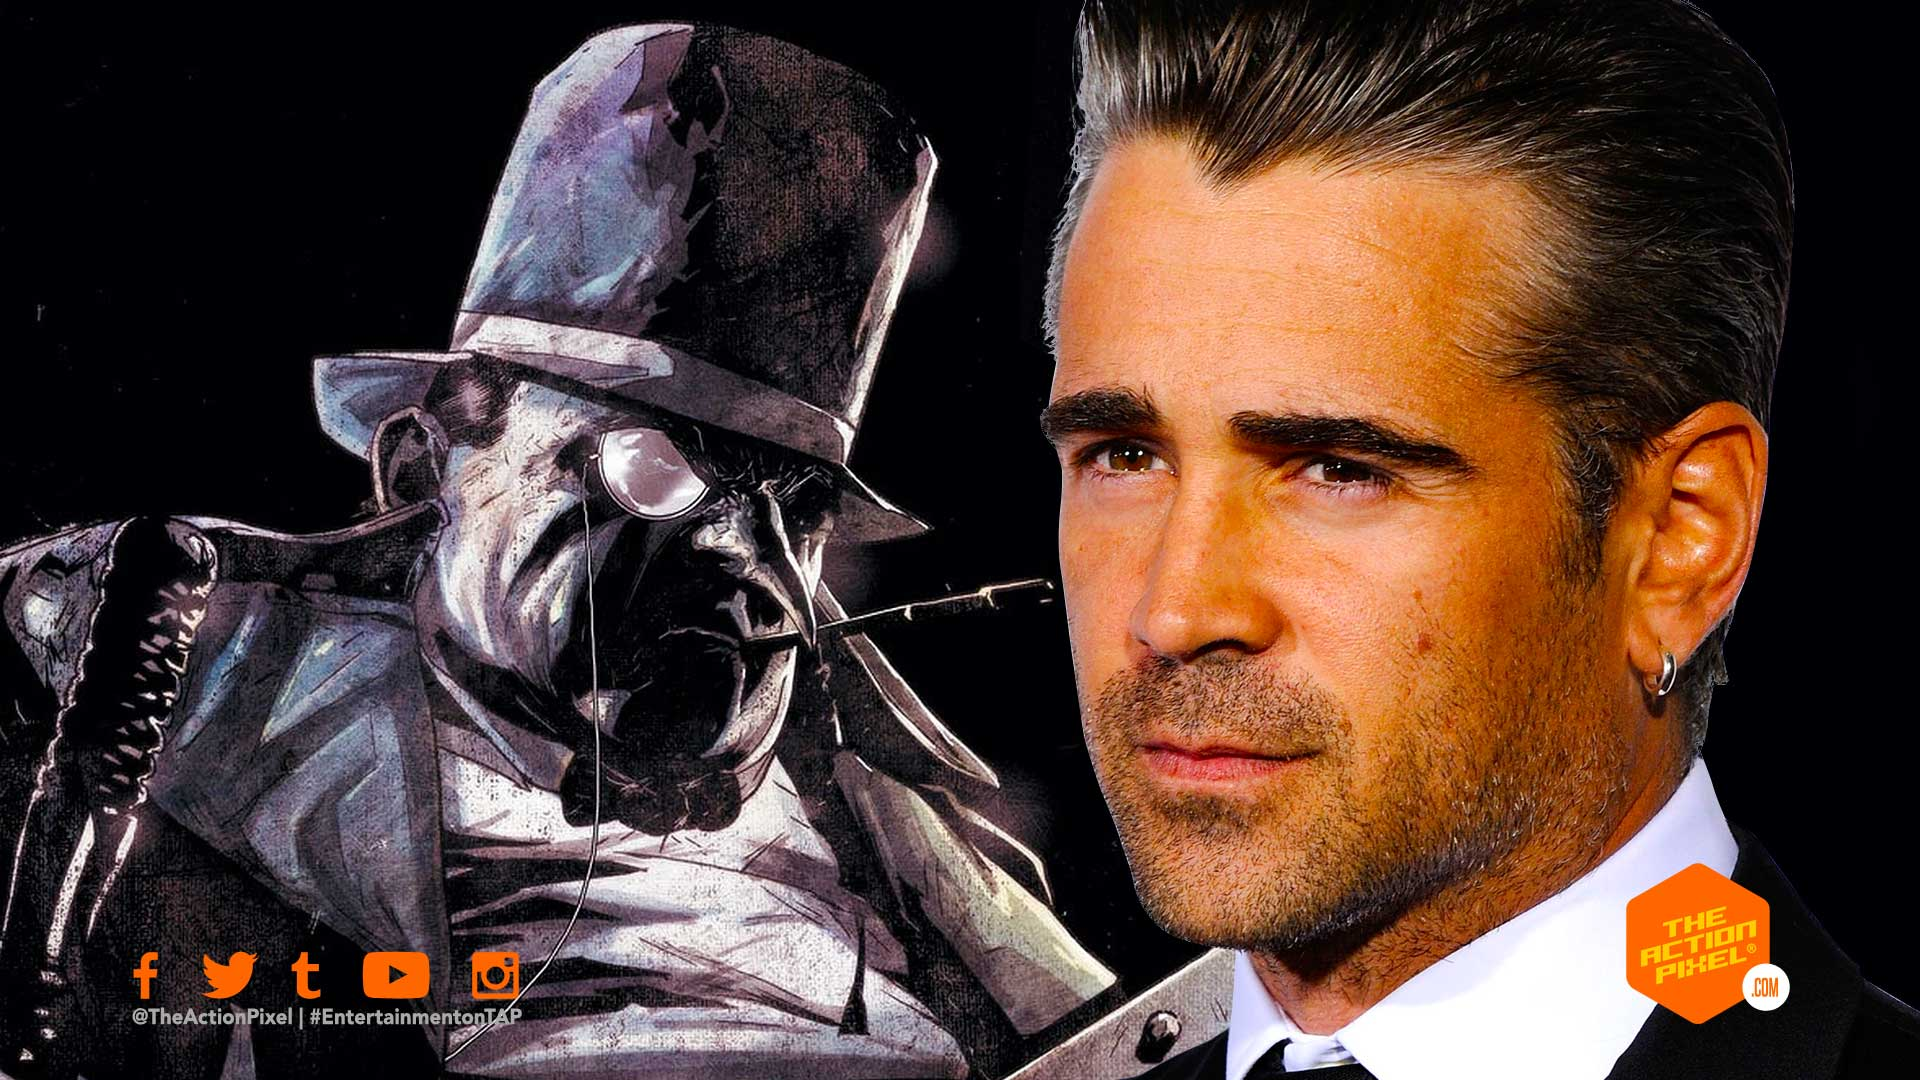 penguin, colin farrell, the penguin, the action pixel, wb pictures, warner bros. pictures, dc comics, the batman, matt reeves, featured,